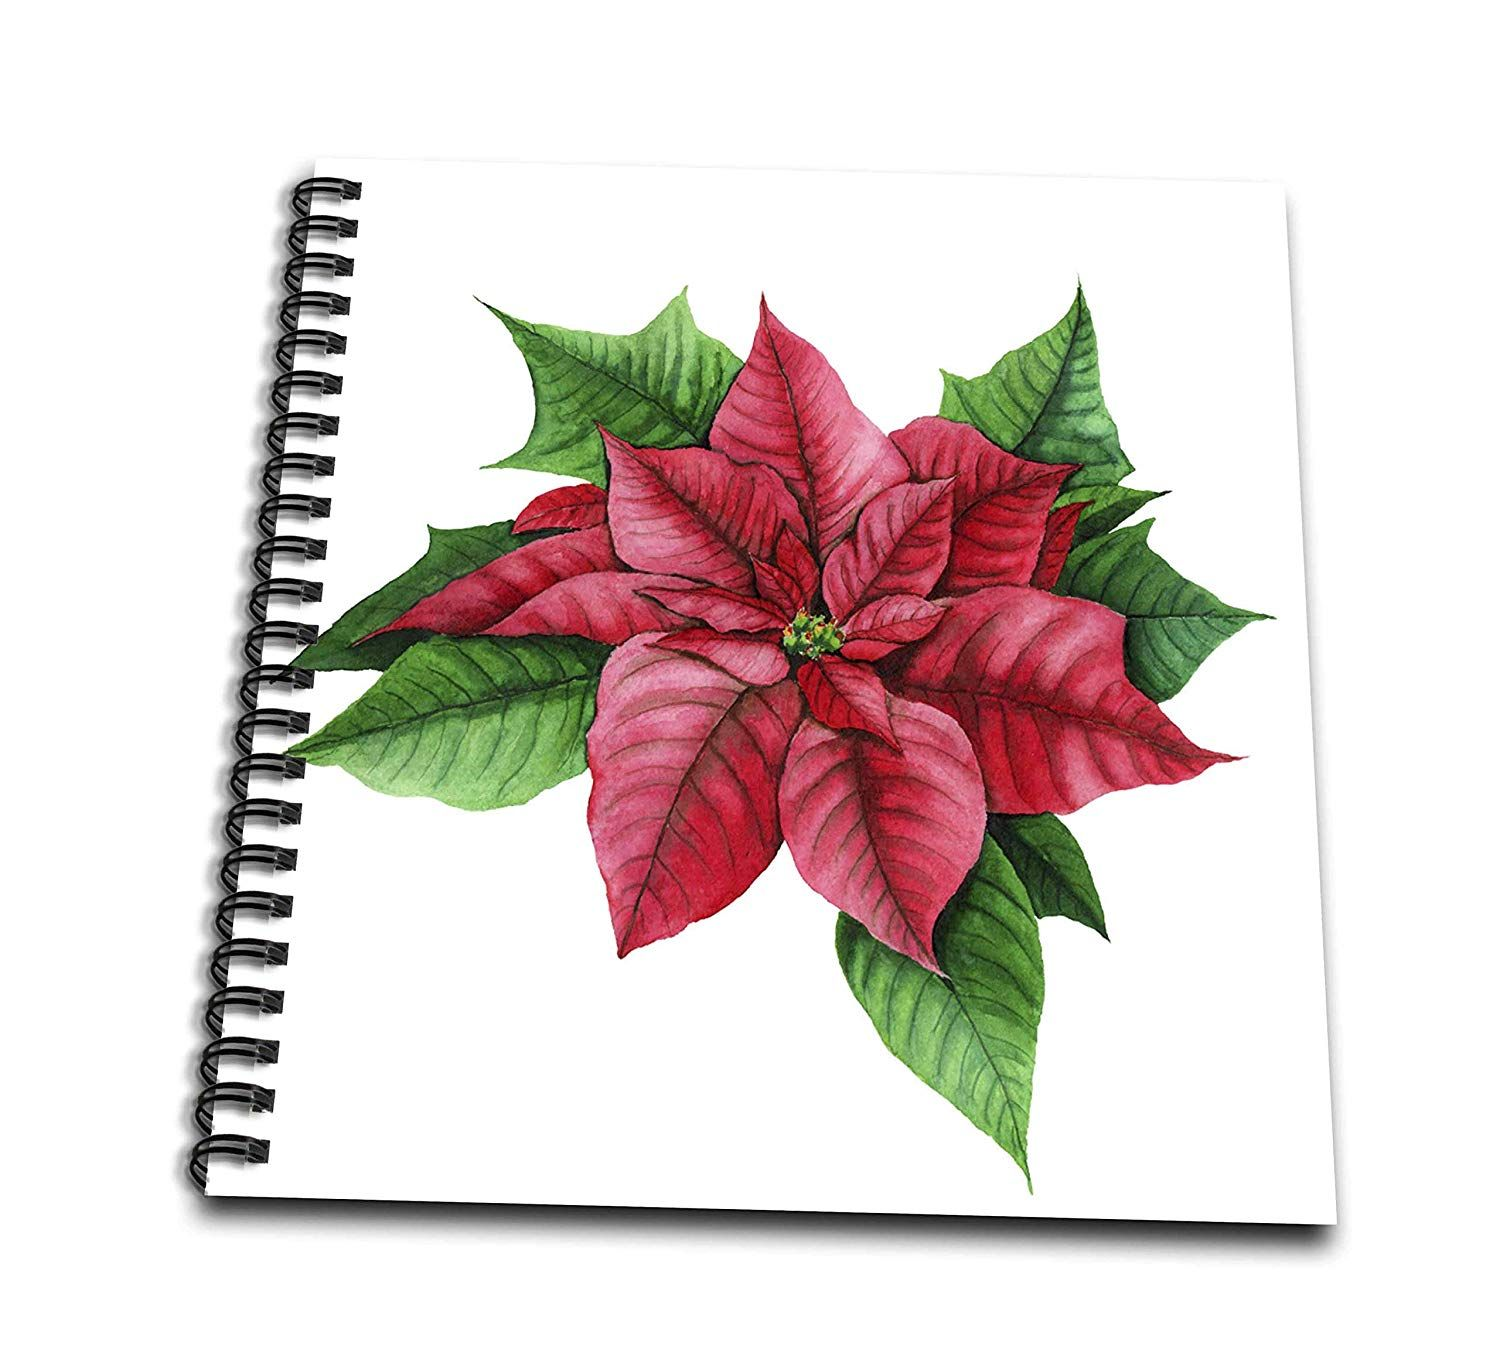 efb1c2a985324 3dRose Anne Marie Baugh - Illustrations - Pretty Image of Watercolor ...